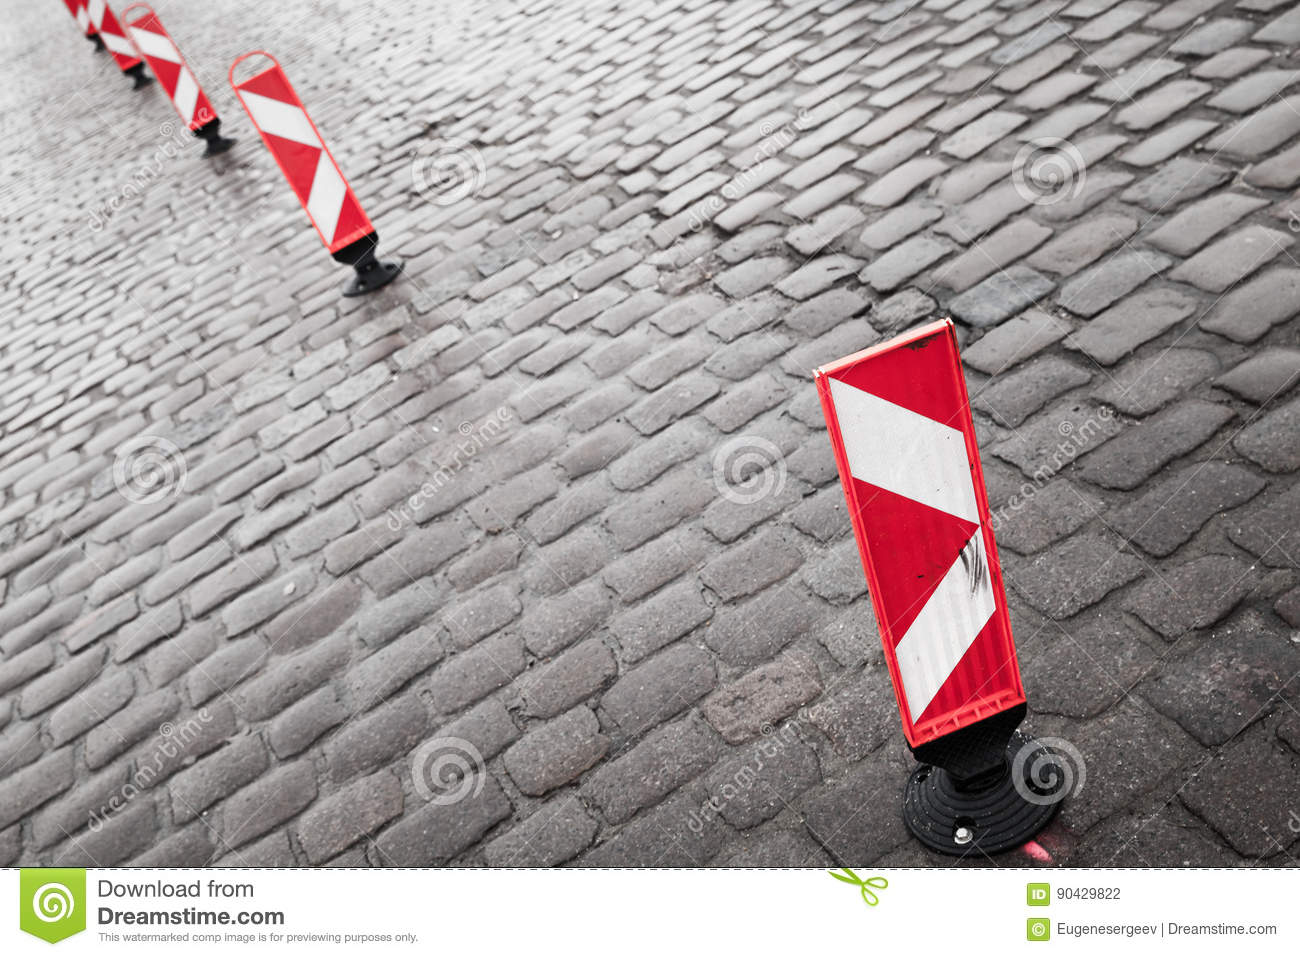 Vertical Red And White Striped Road Signs Stock Photo - Image of